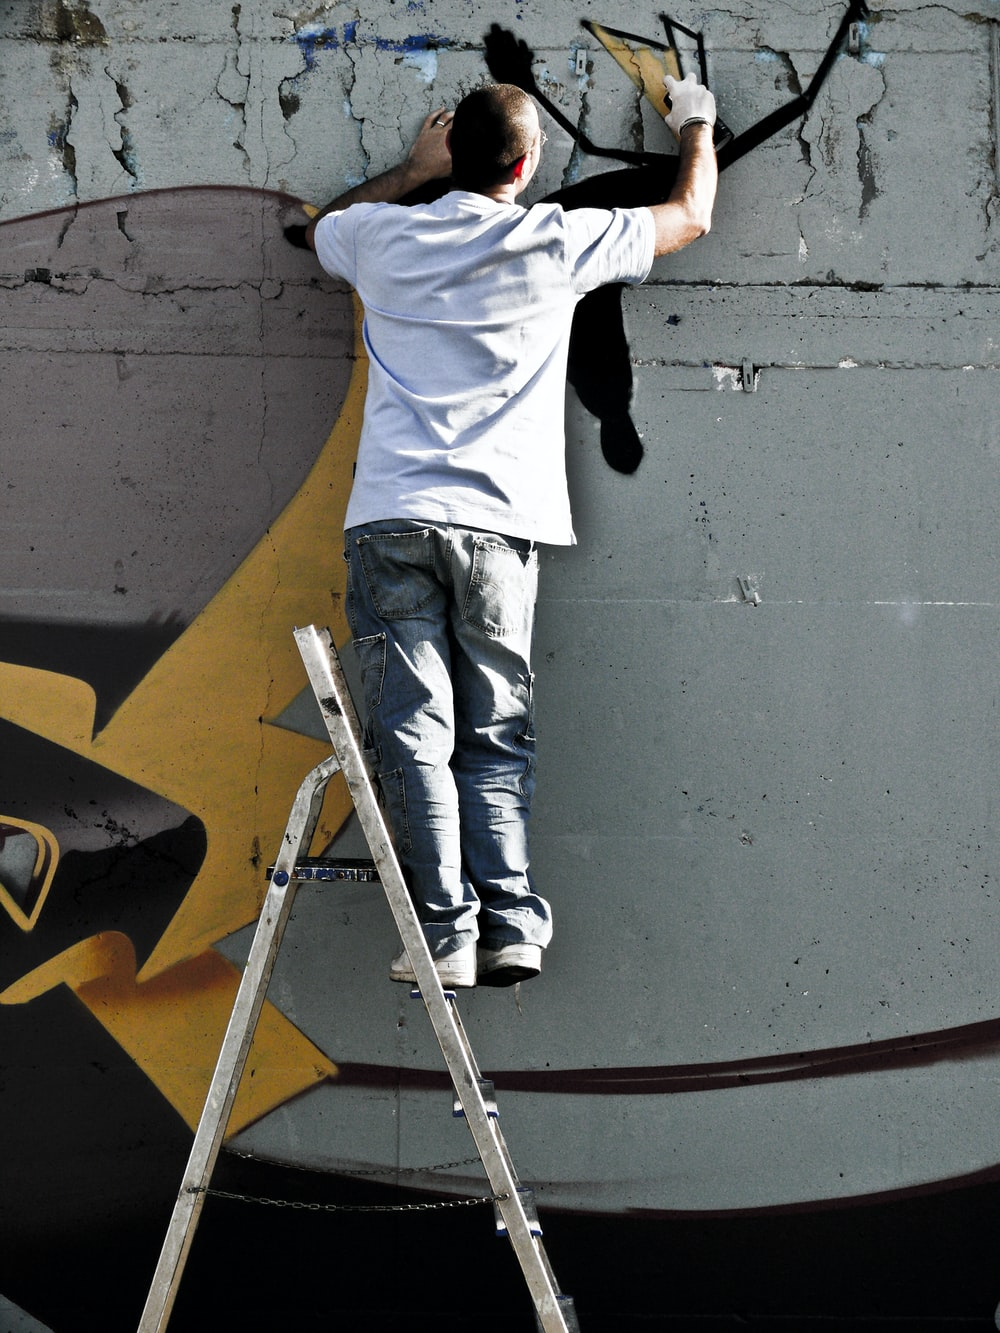 person doing mural paintings